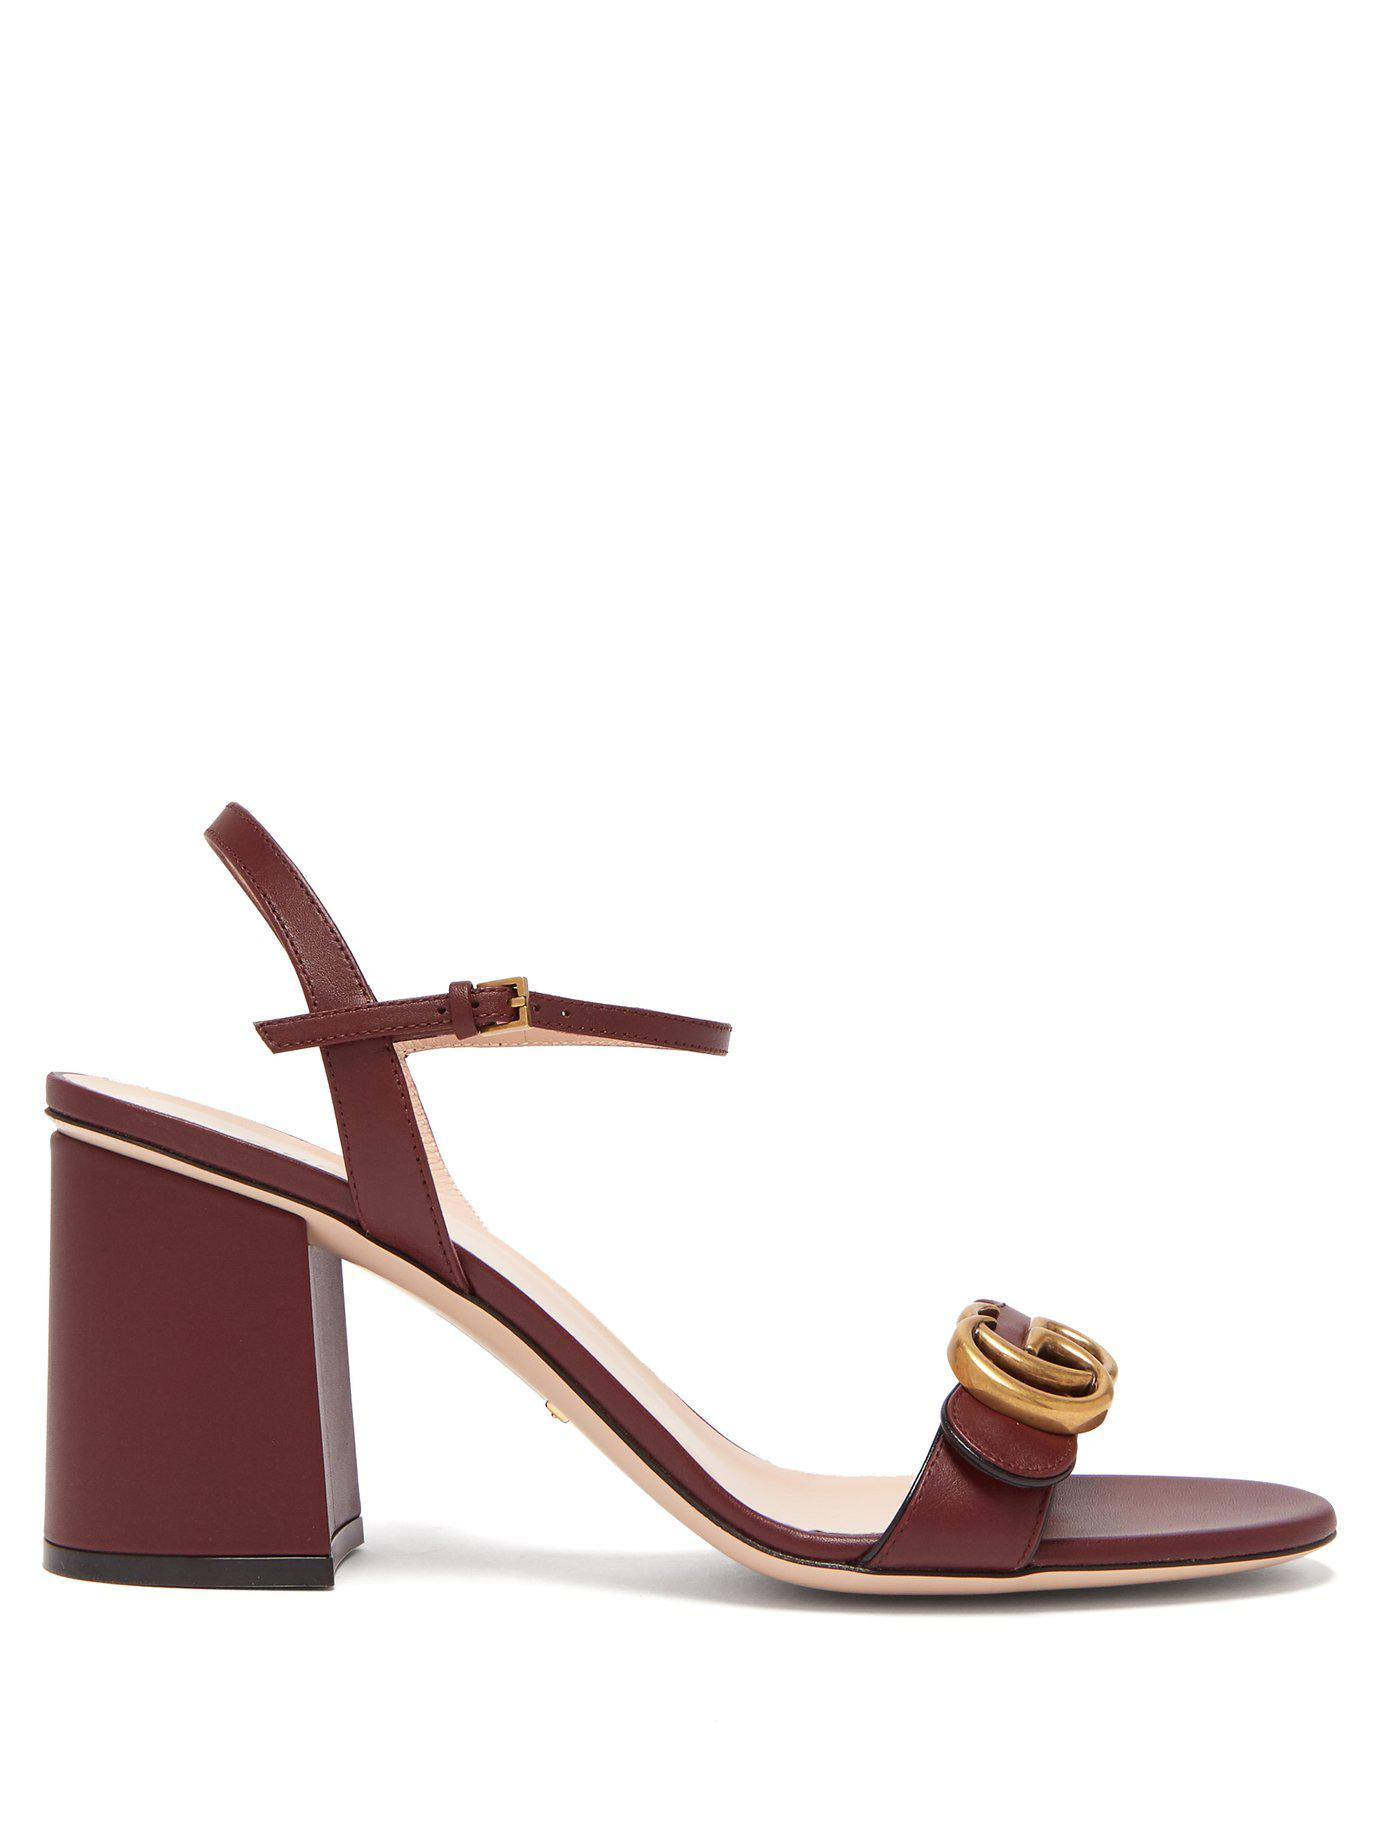 db3710edf792 Gucci. Women s Gg Marmont Leather Sandals